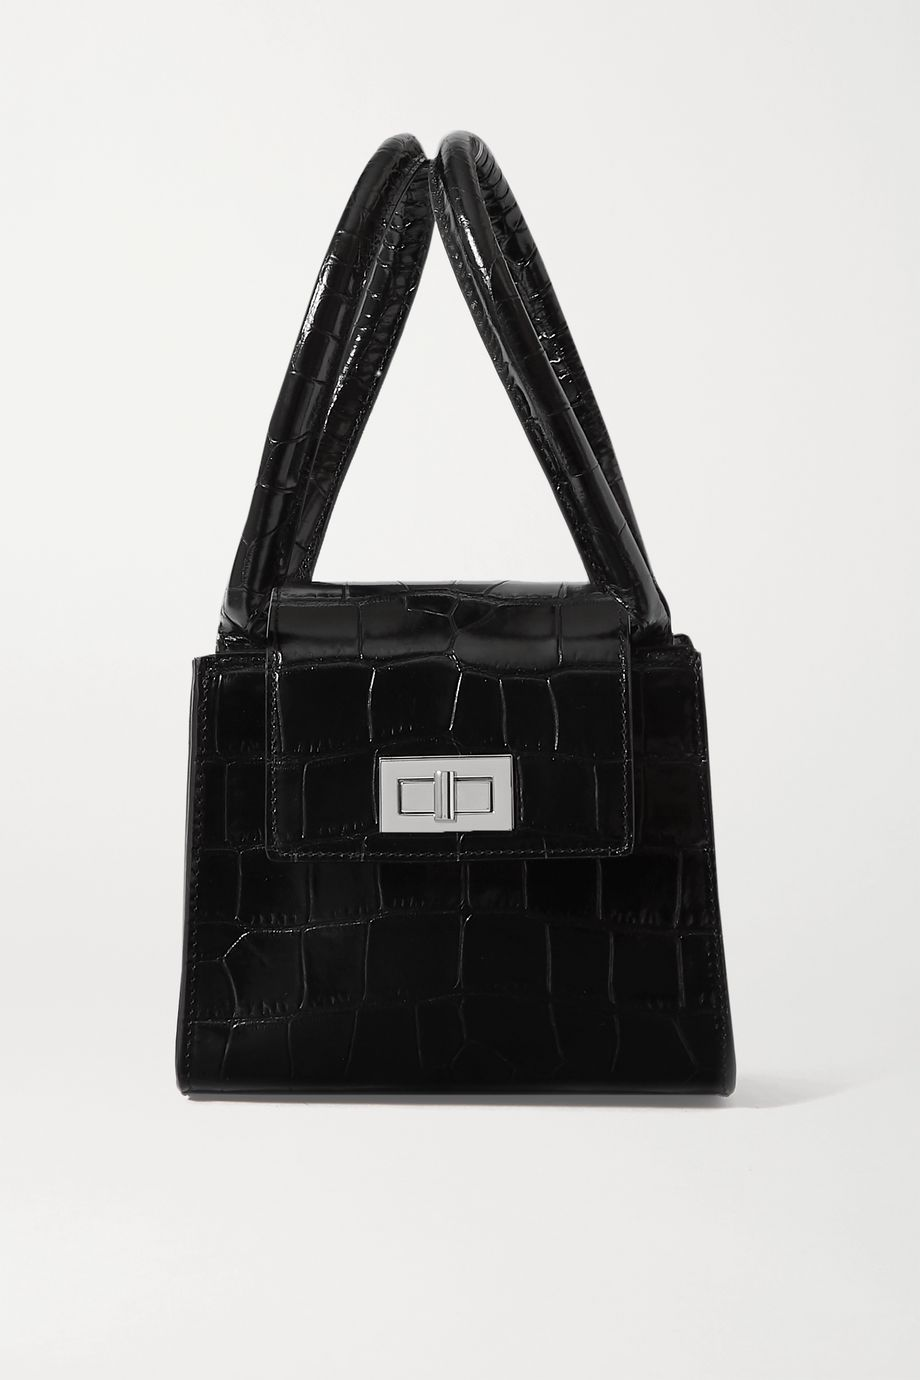 BY FAR Sabrina small croc-effect leather tote